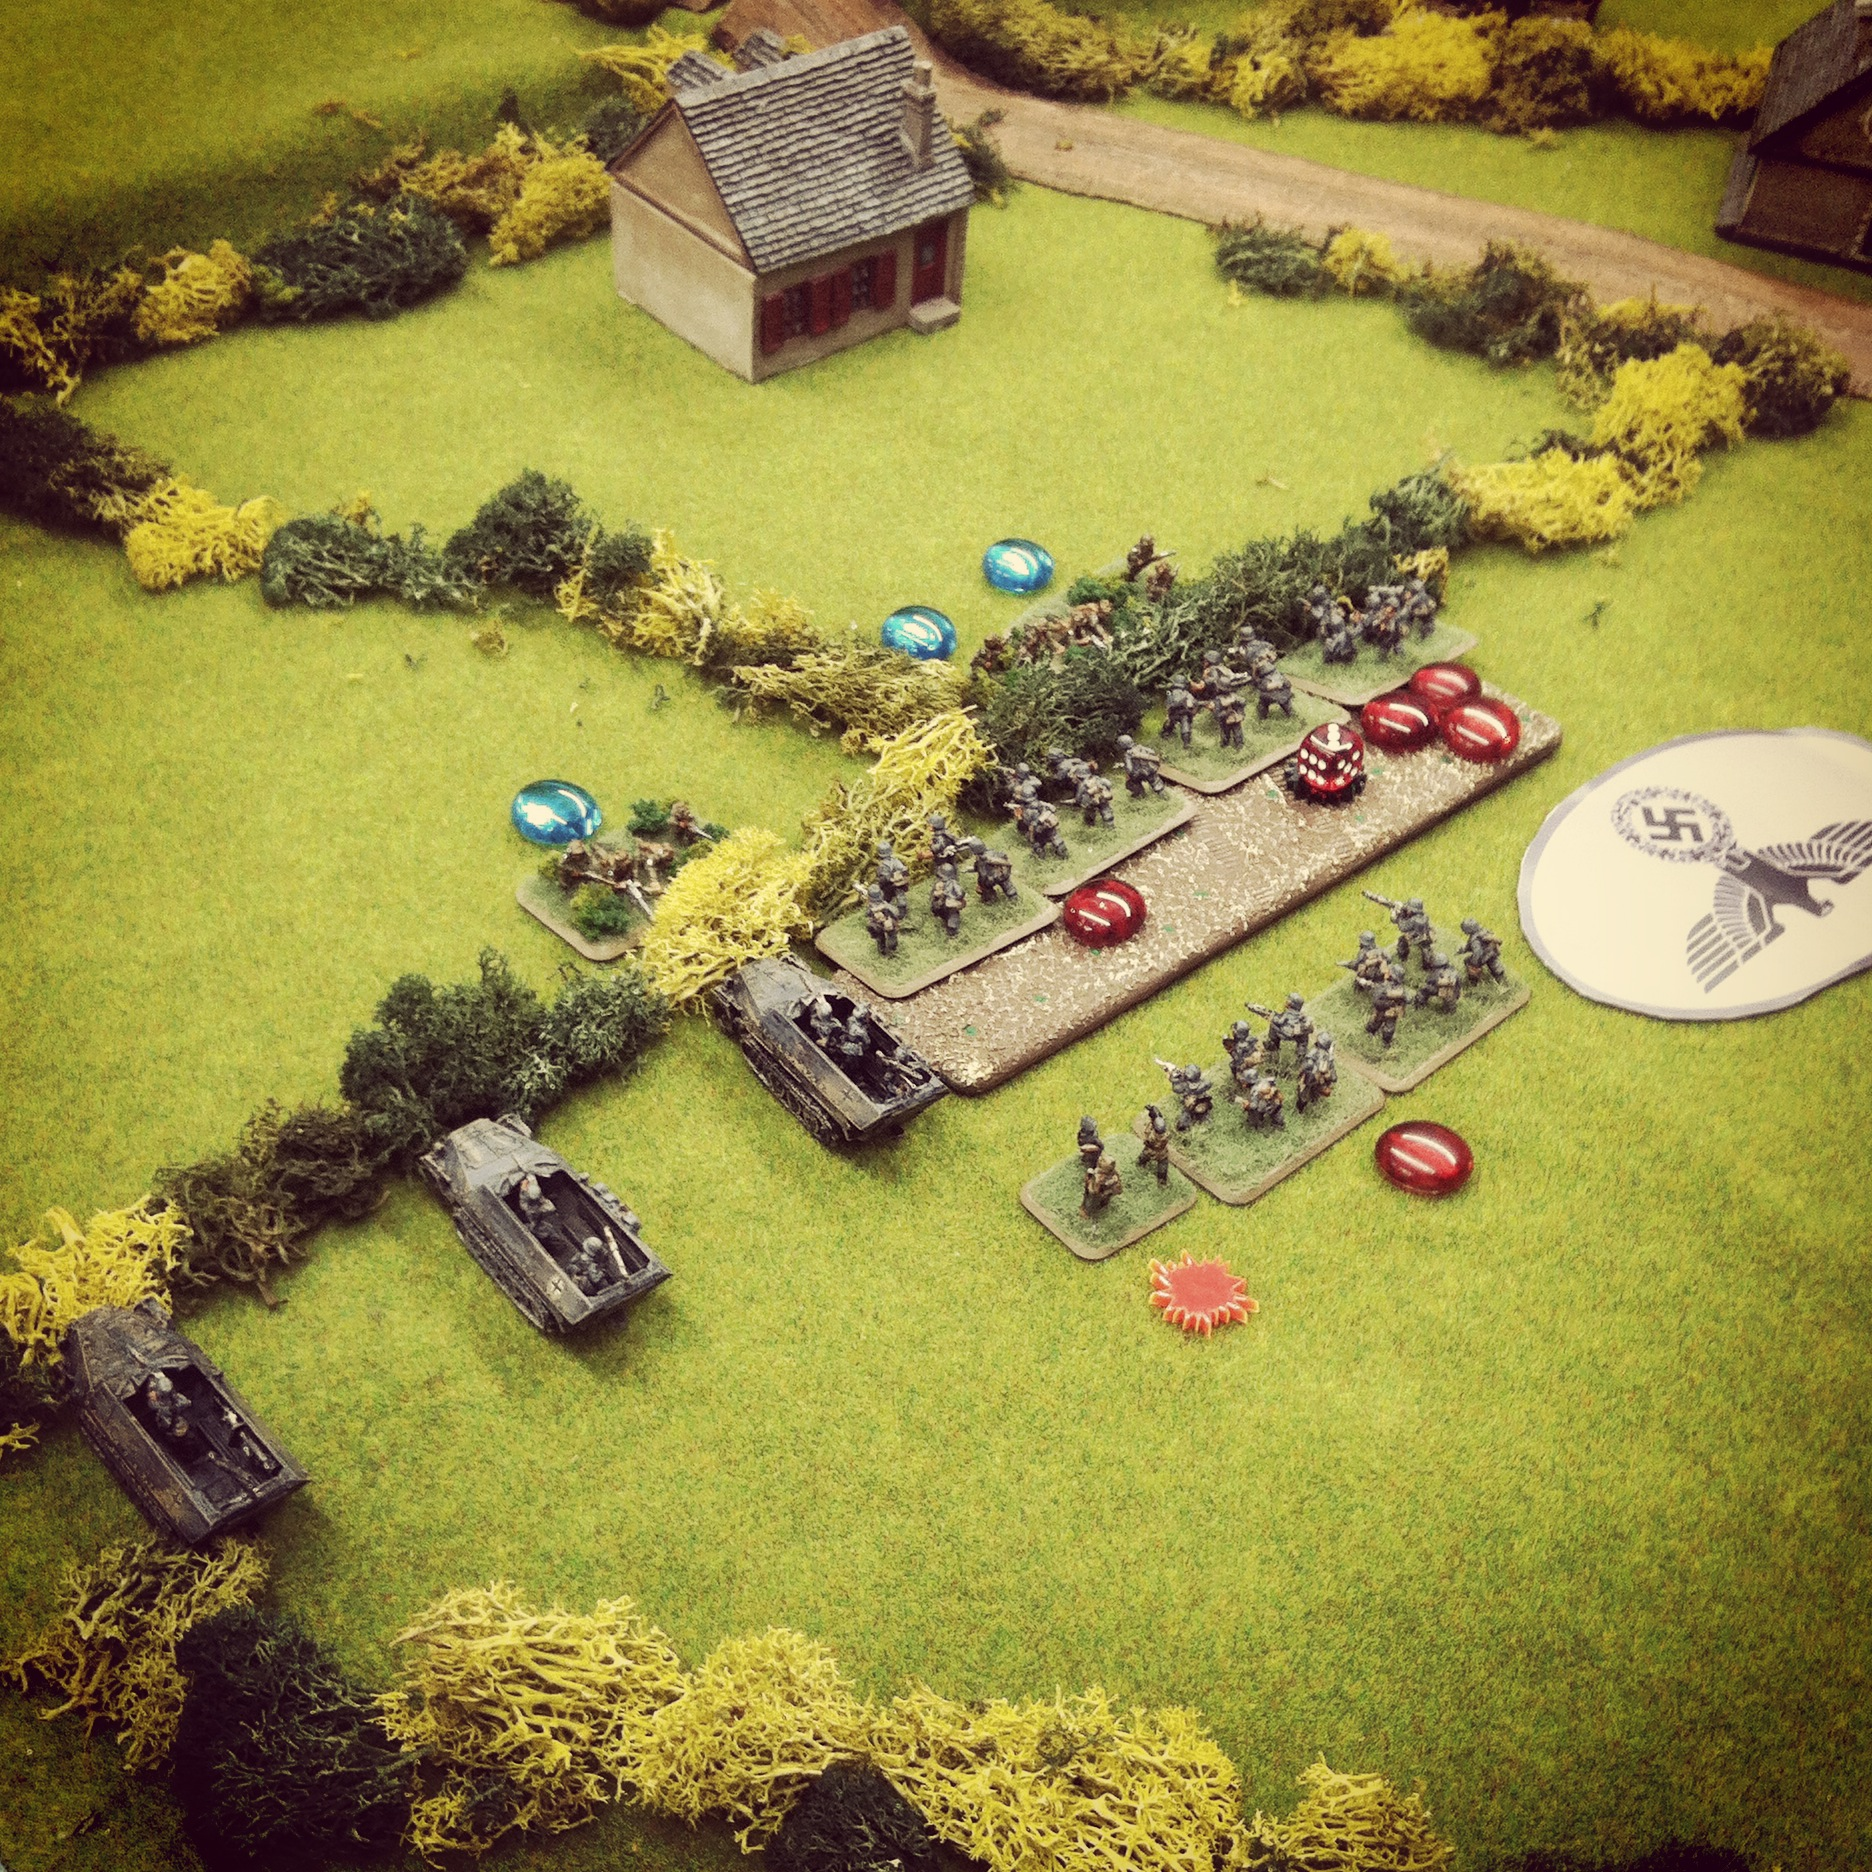 A German platoon encounters a minefield and takes heavy casualties